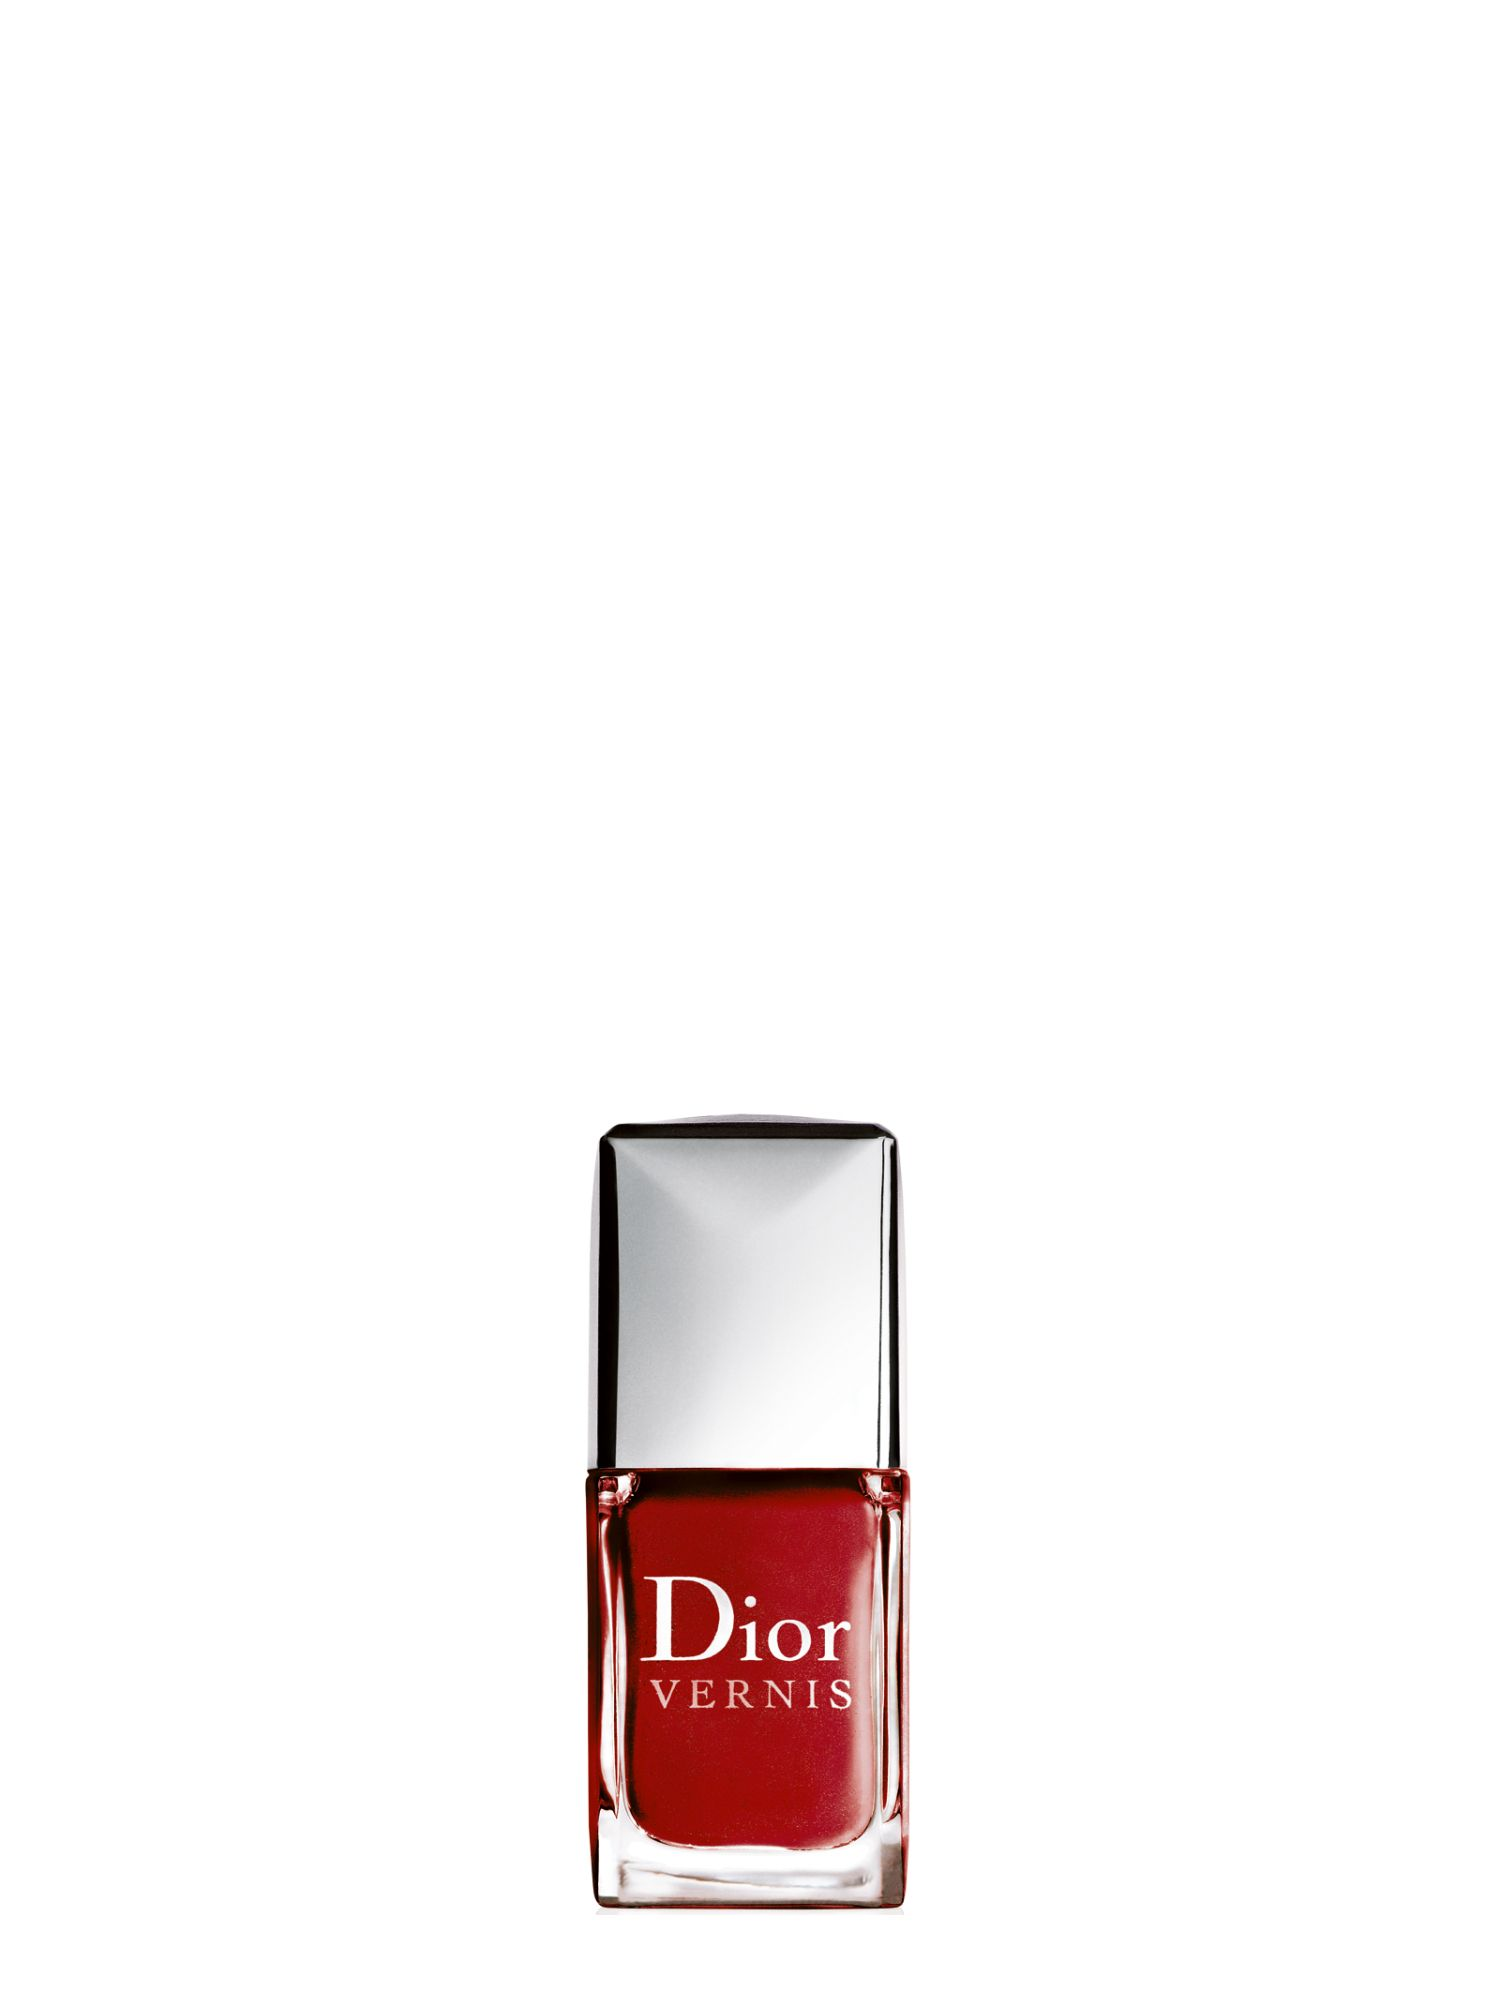 Dior Vernis Long-Wearing Nail Lacquer Cherry product image